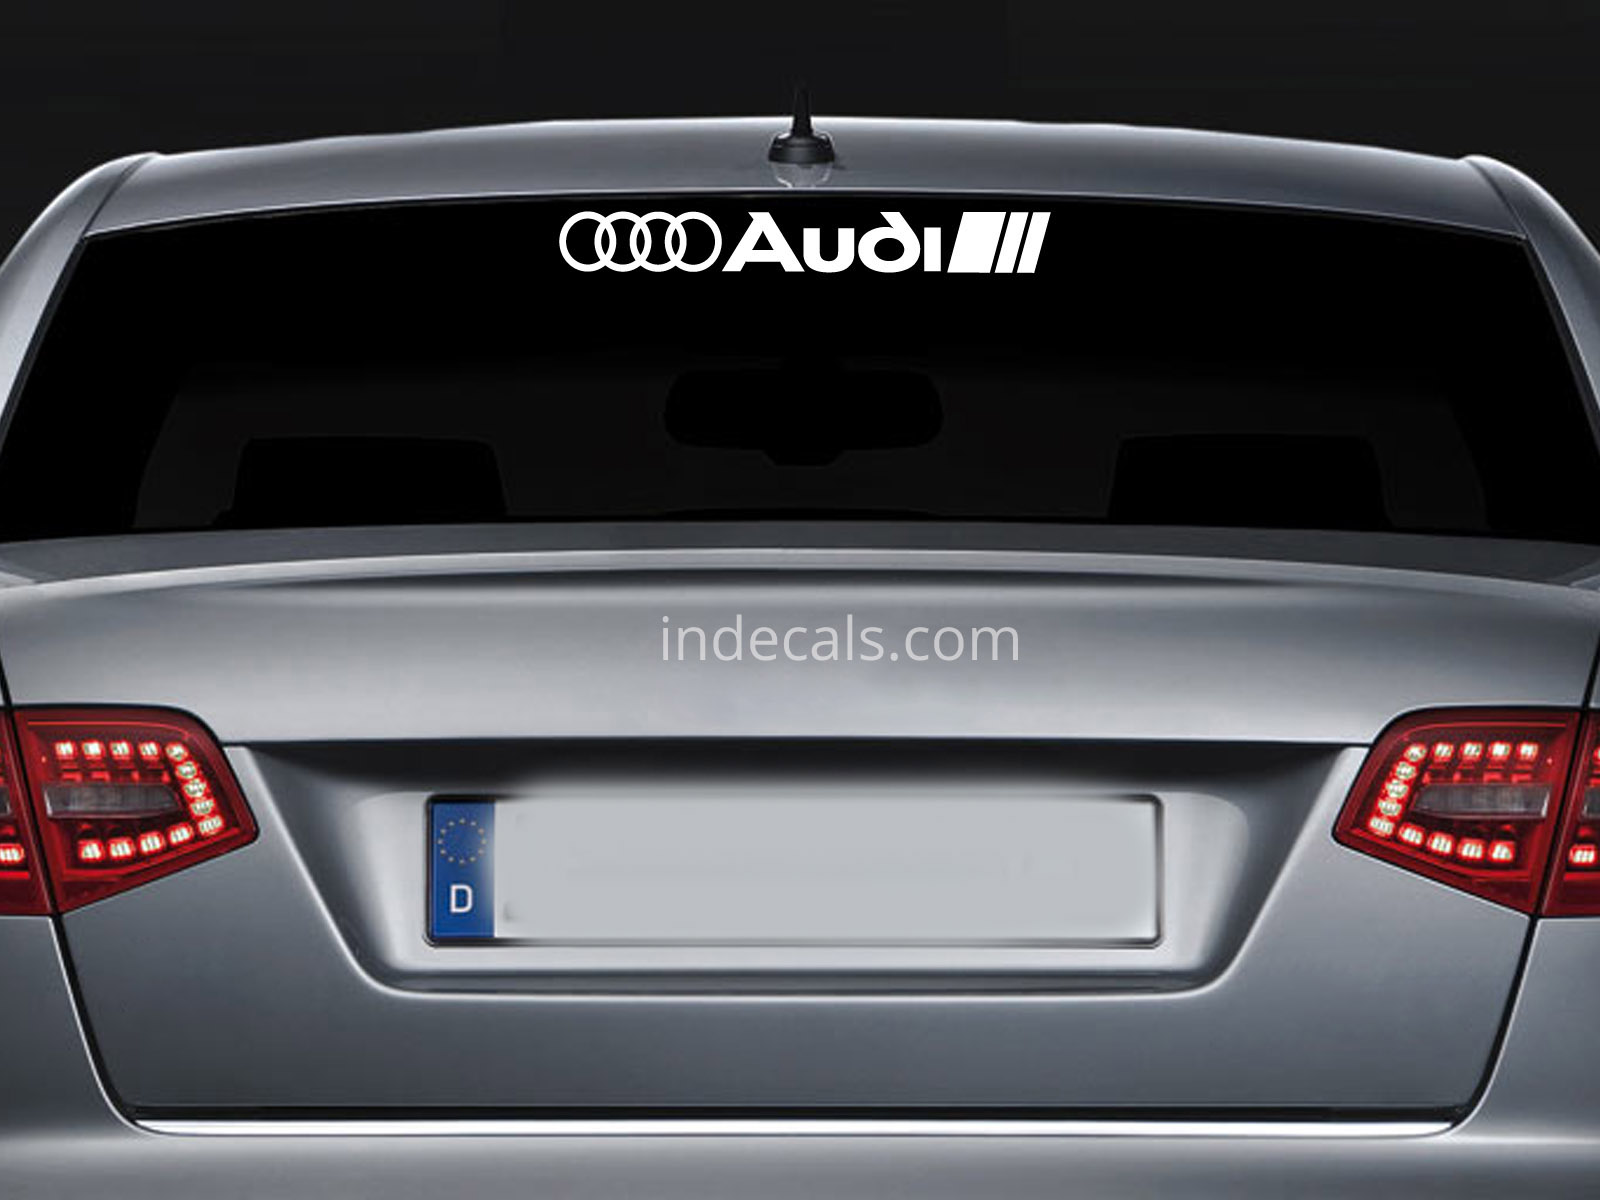 1 x Audi Sticker for Windshield or Back Window - White